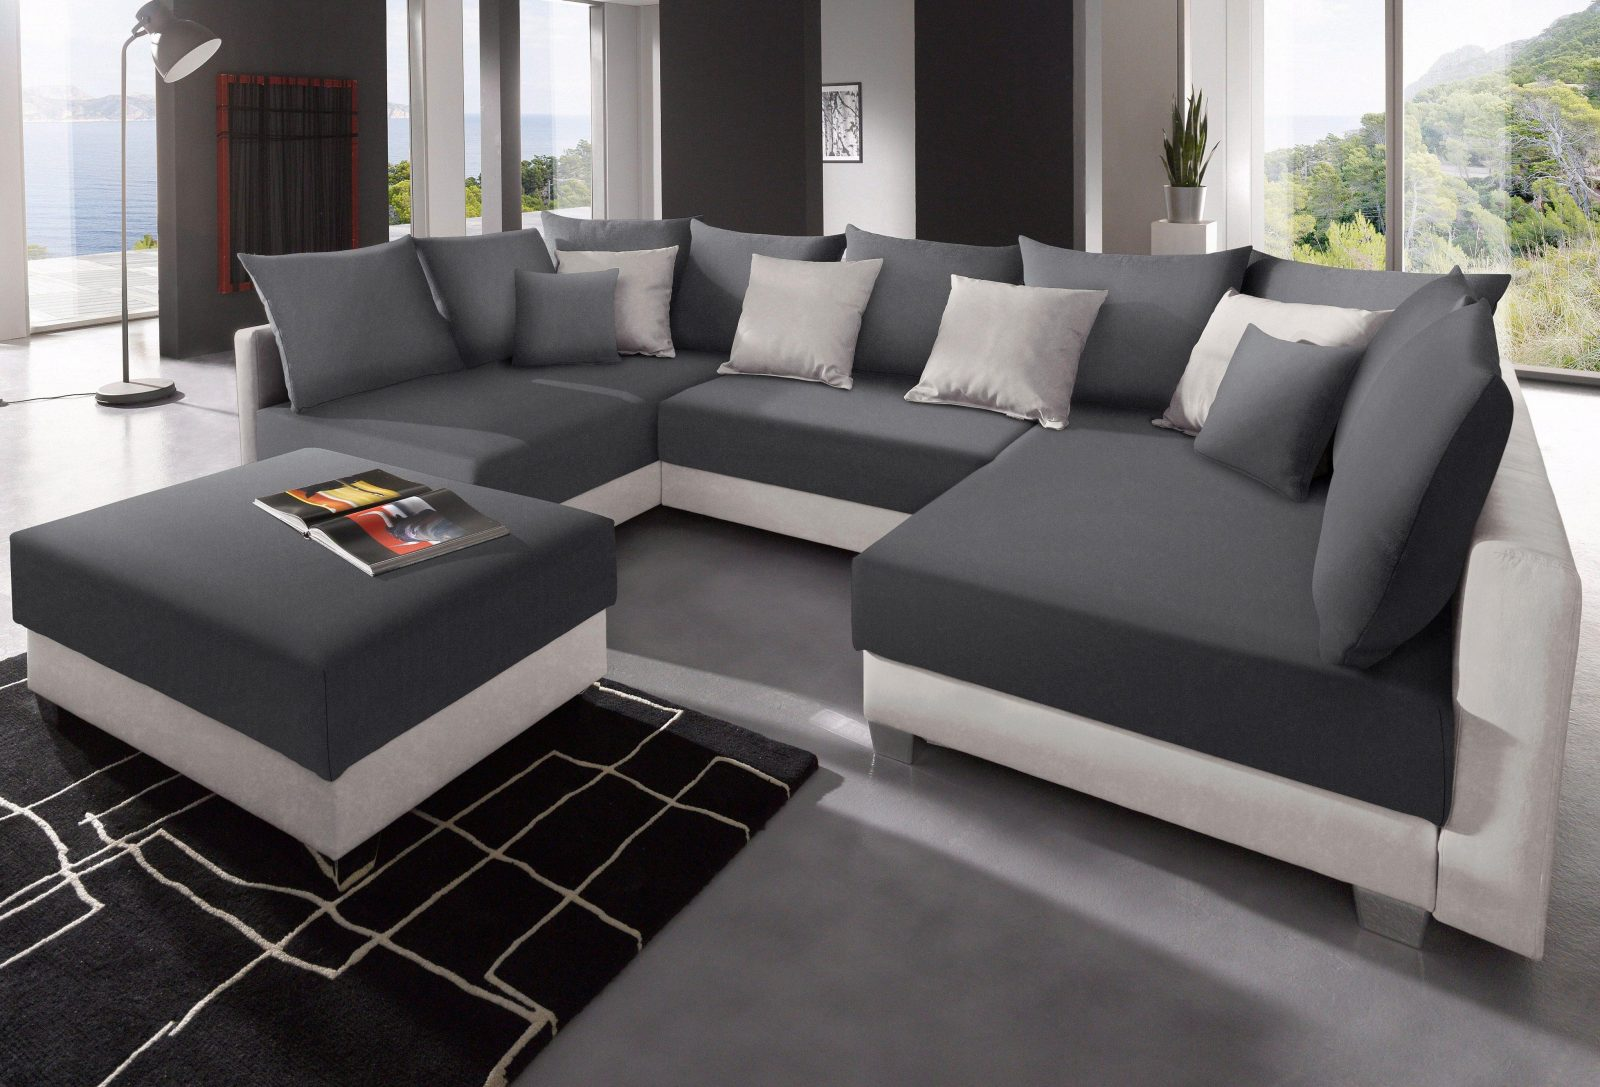 L sofa xxl 7 wohnlandschaft matera xxl u form design couch for Couch u form klein